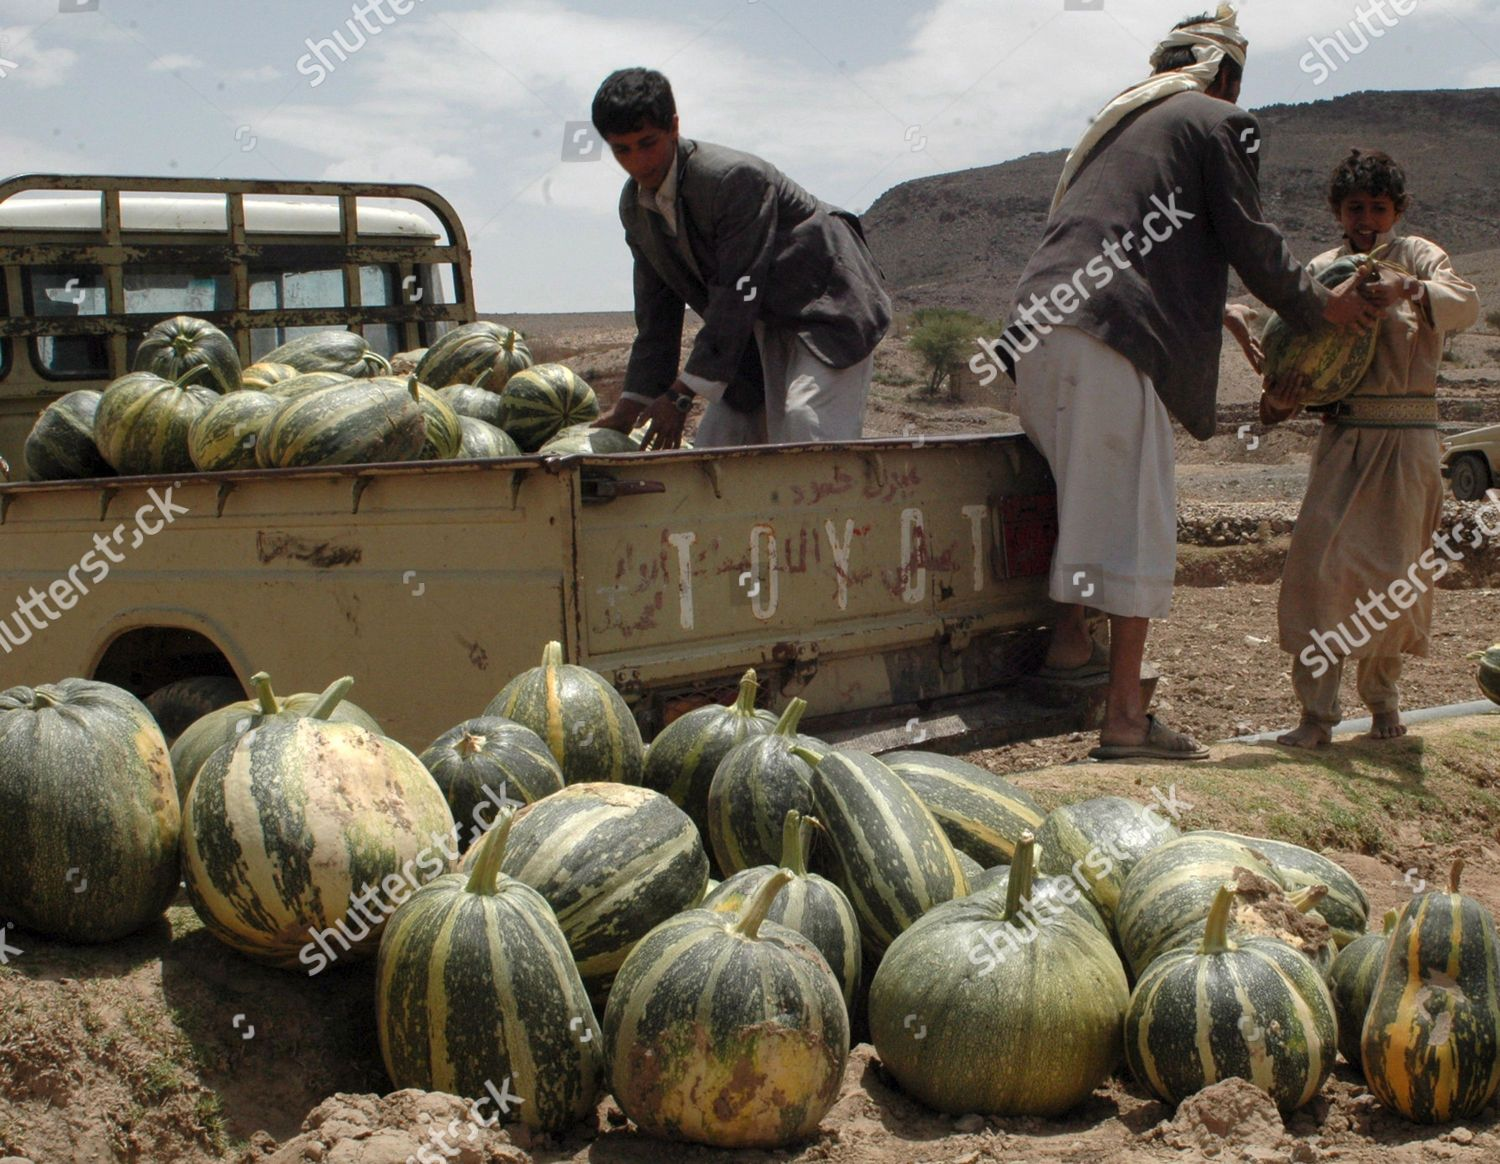 Yemeni Farmer c His Sons Collect Watermelons Editorial Stock Photo